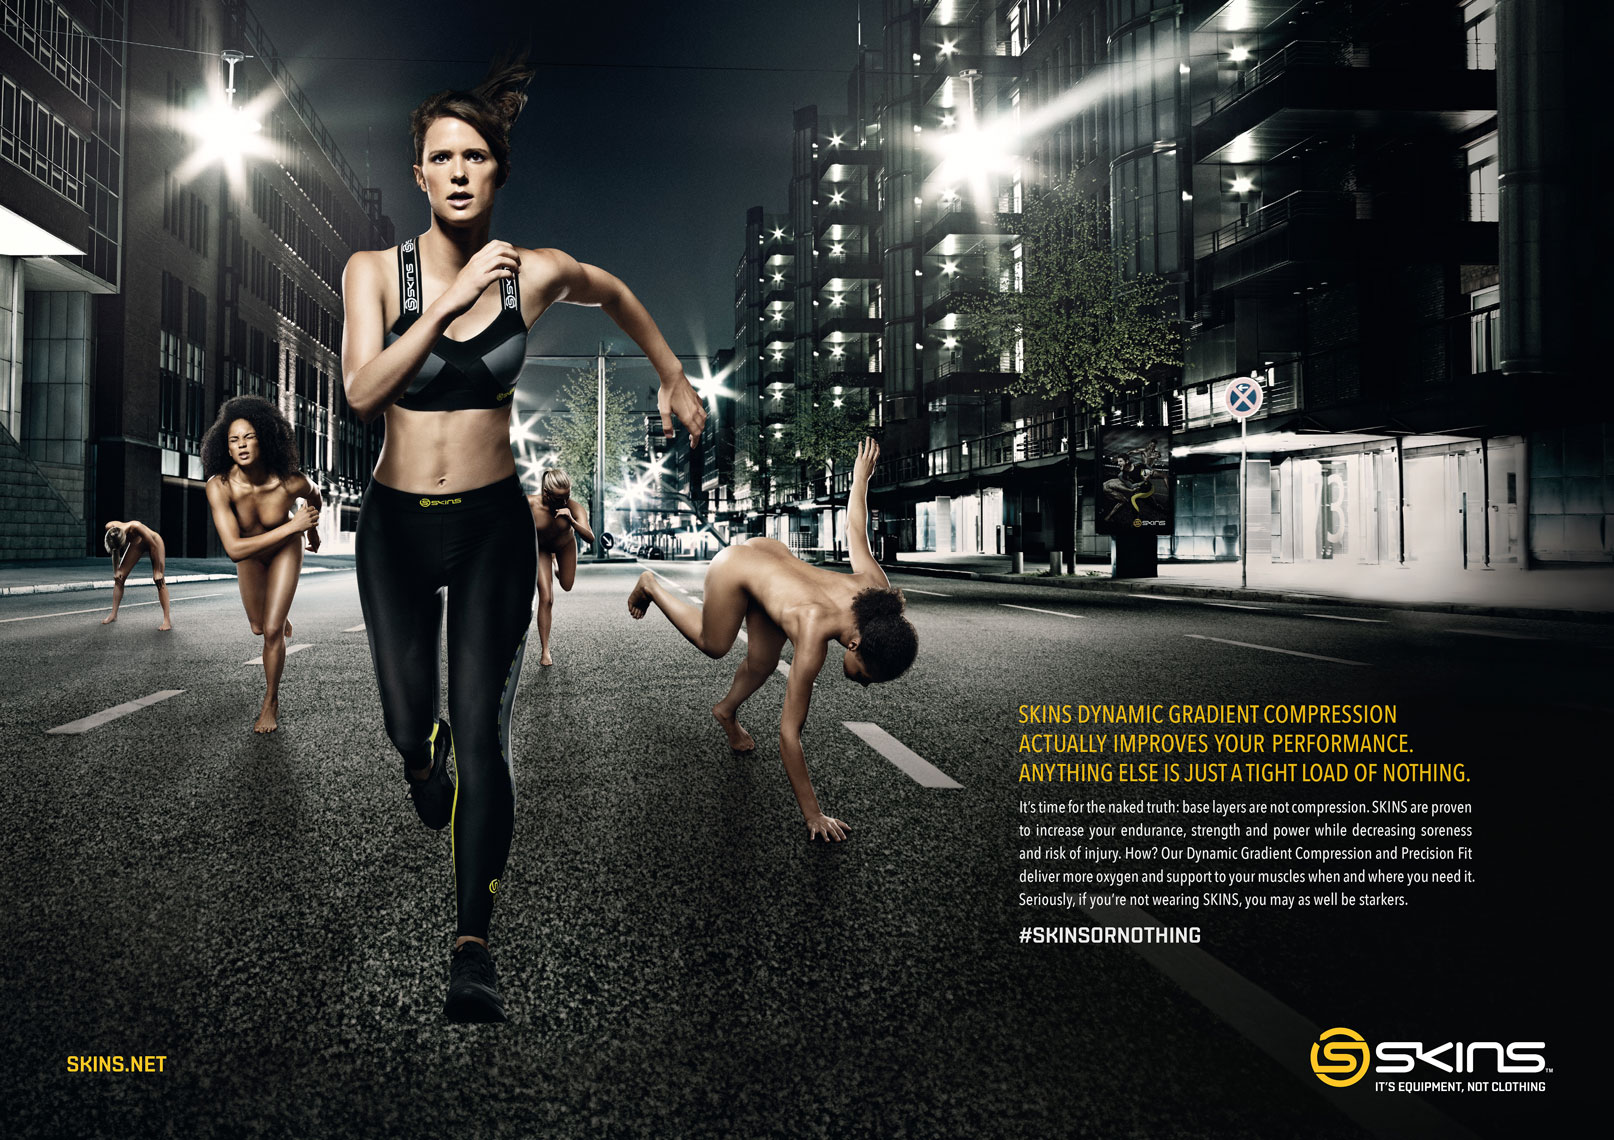 issie-gibbons-fashion-stylist-skins-campaign-sportswear-high-performance-womenswear-running